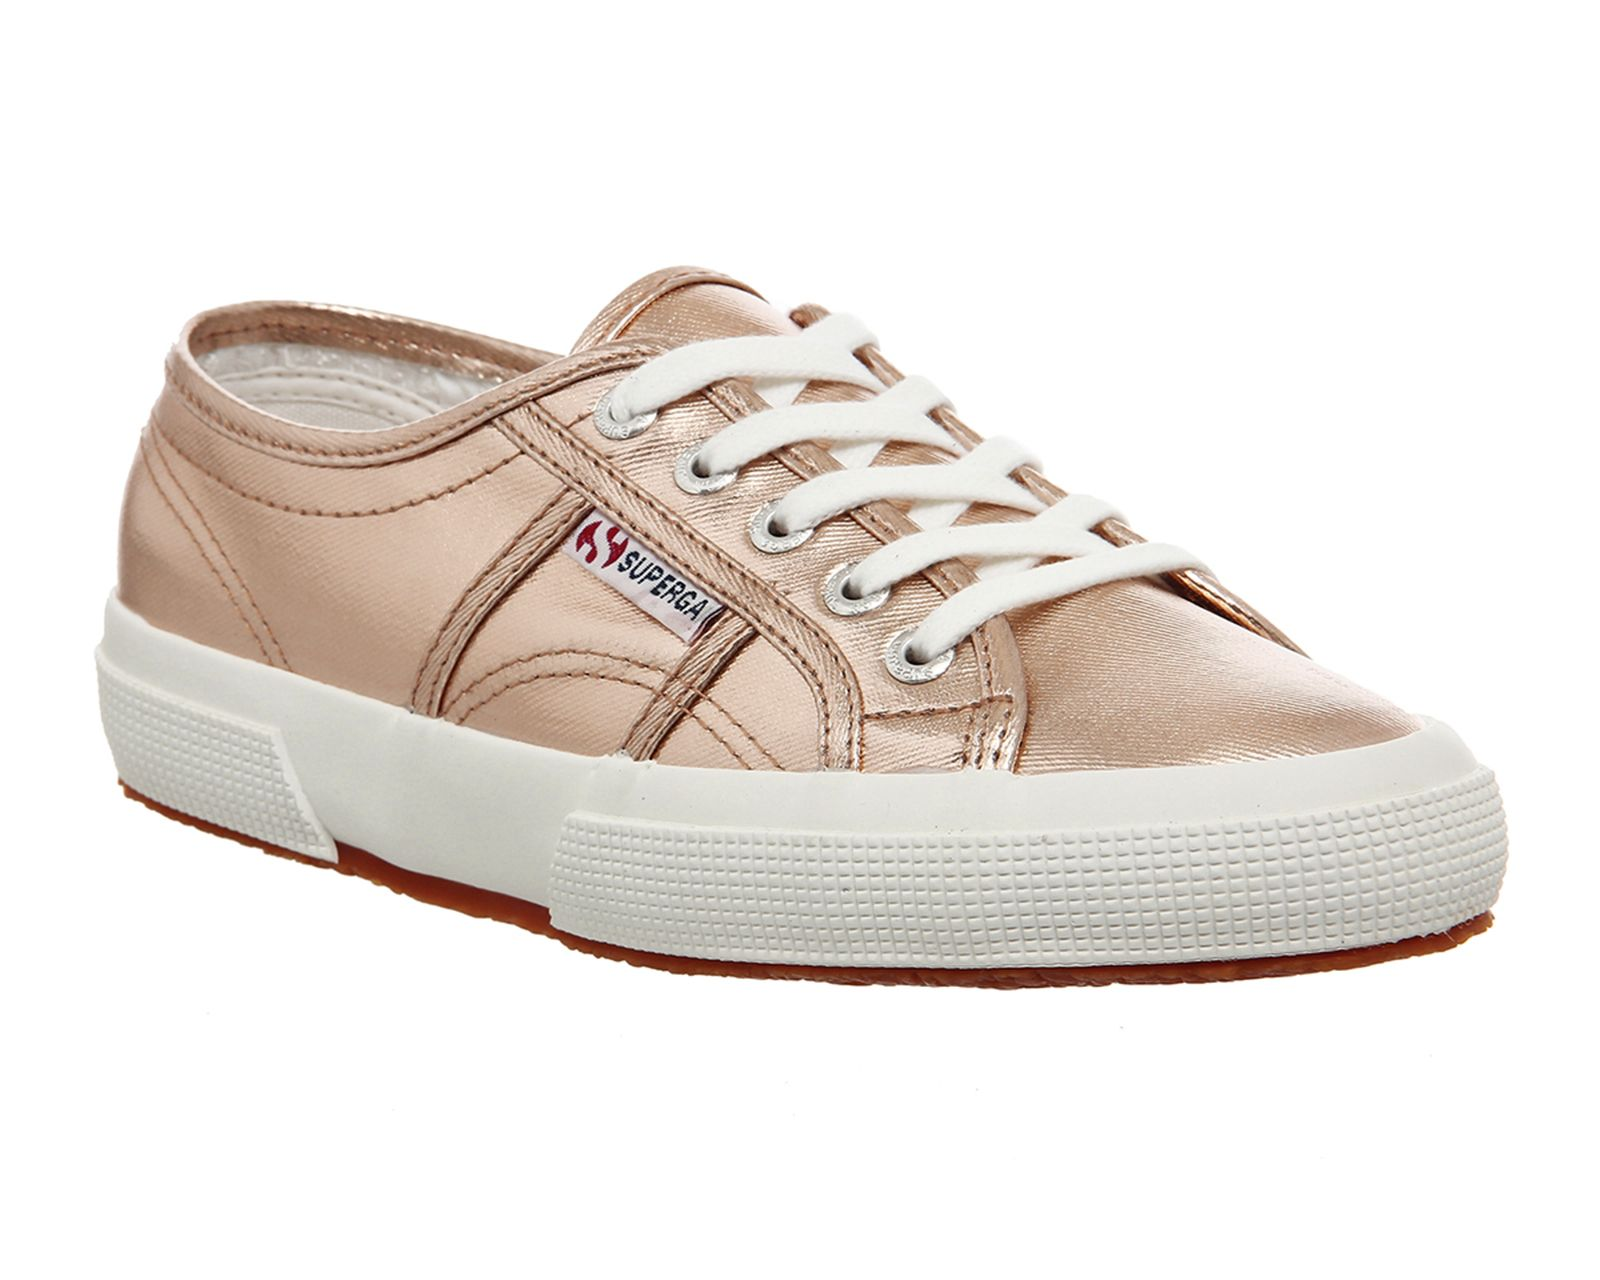 Superga Rose Gold Cometu 2750 Trainersz GEO388219